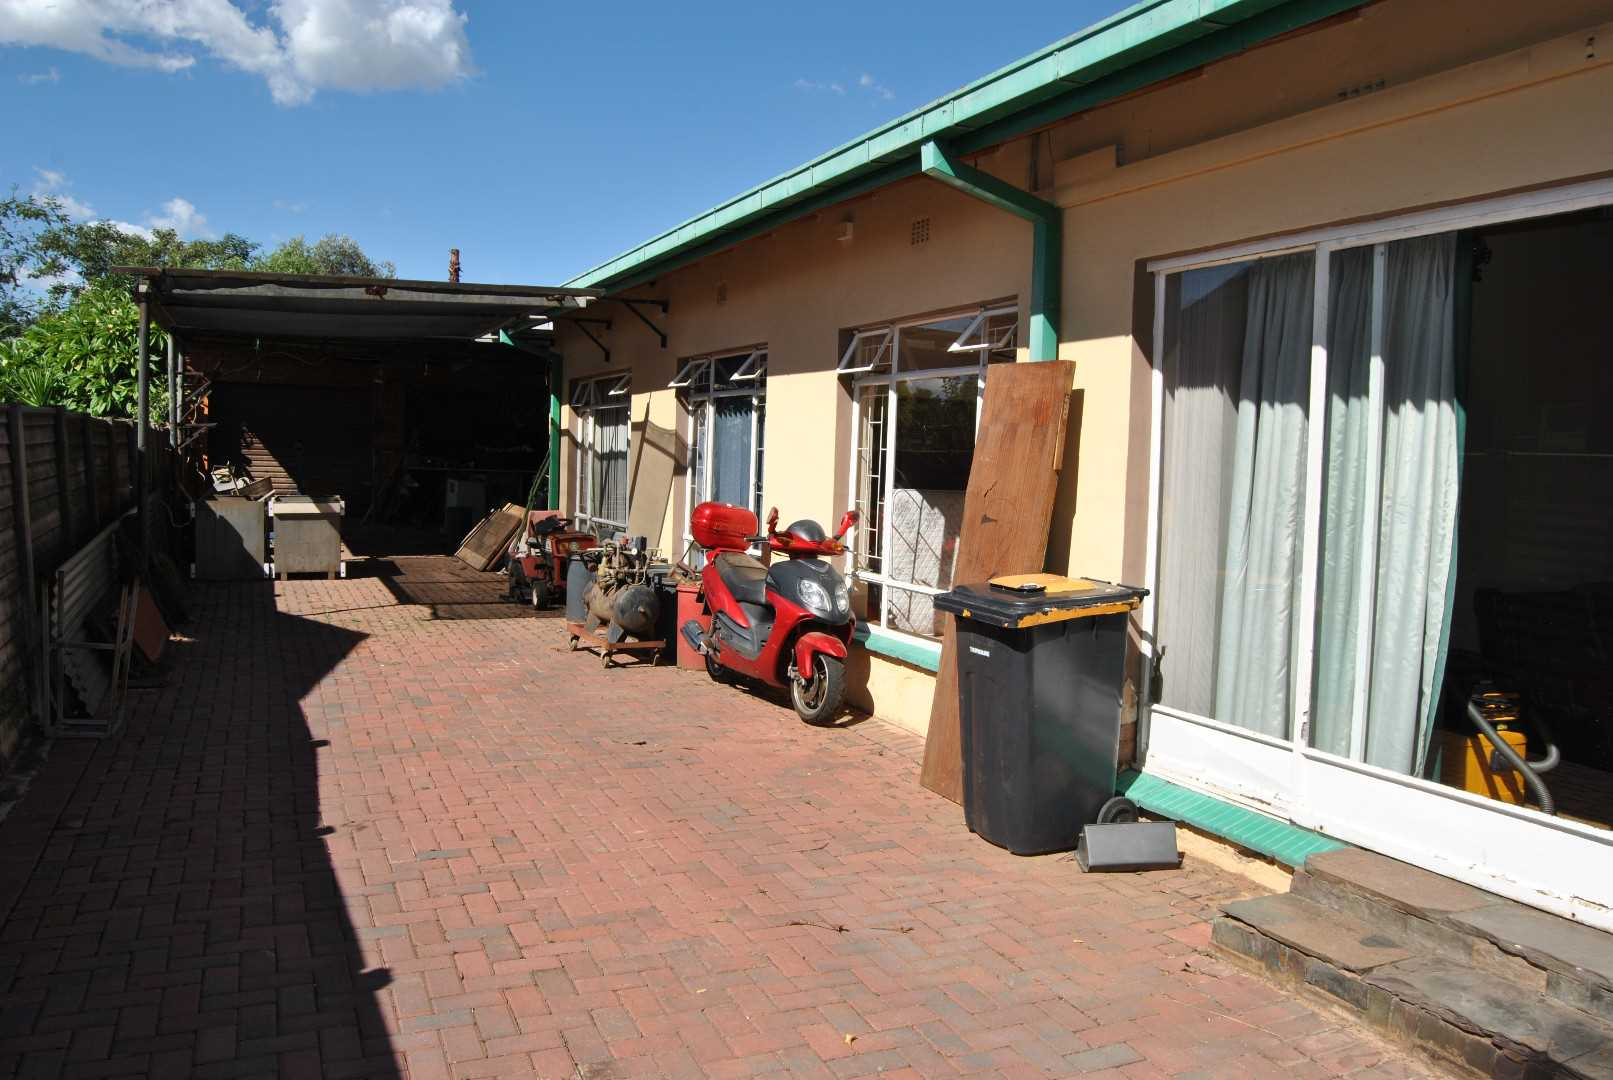 driveway with double garage